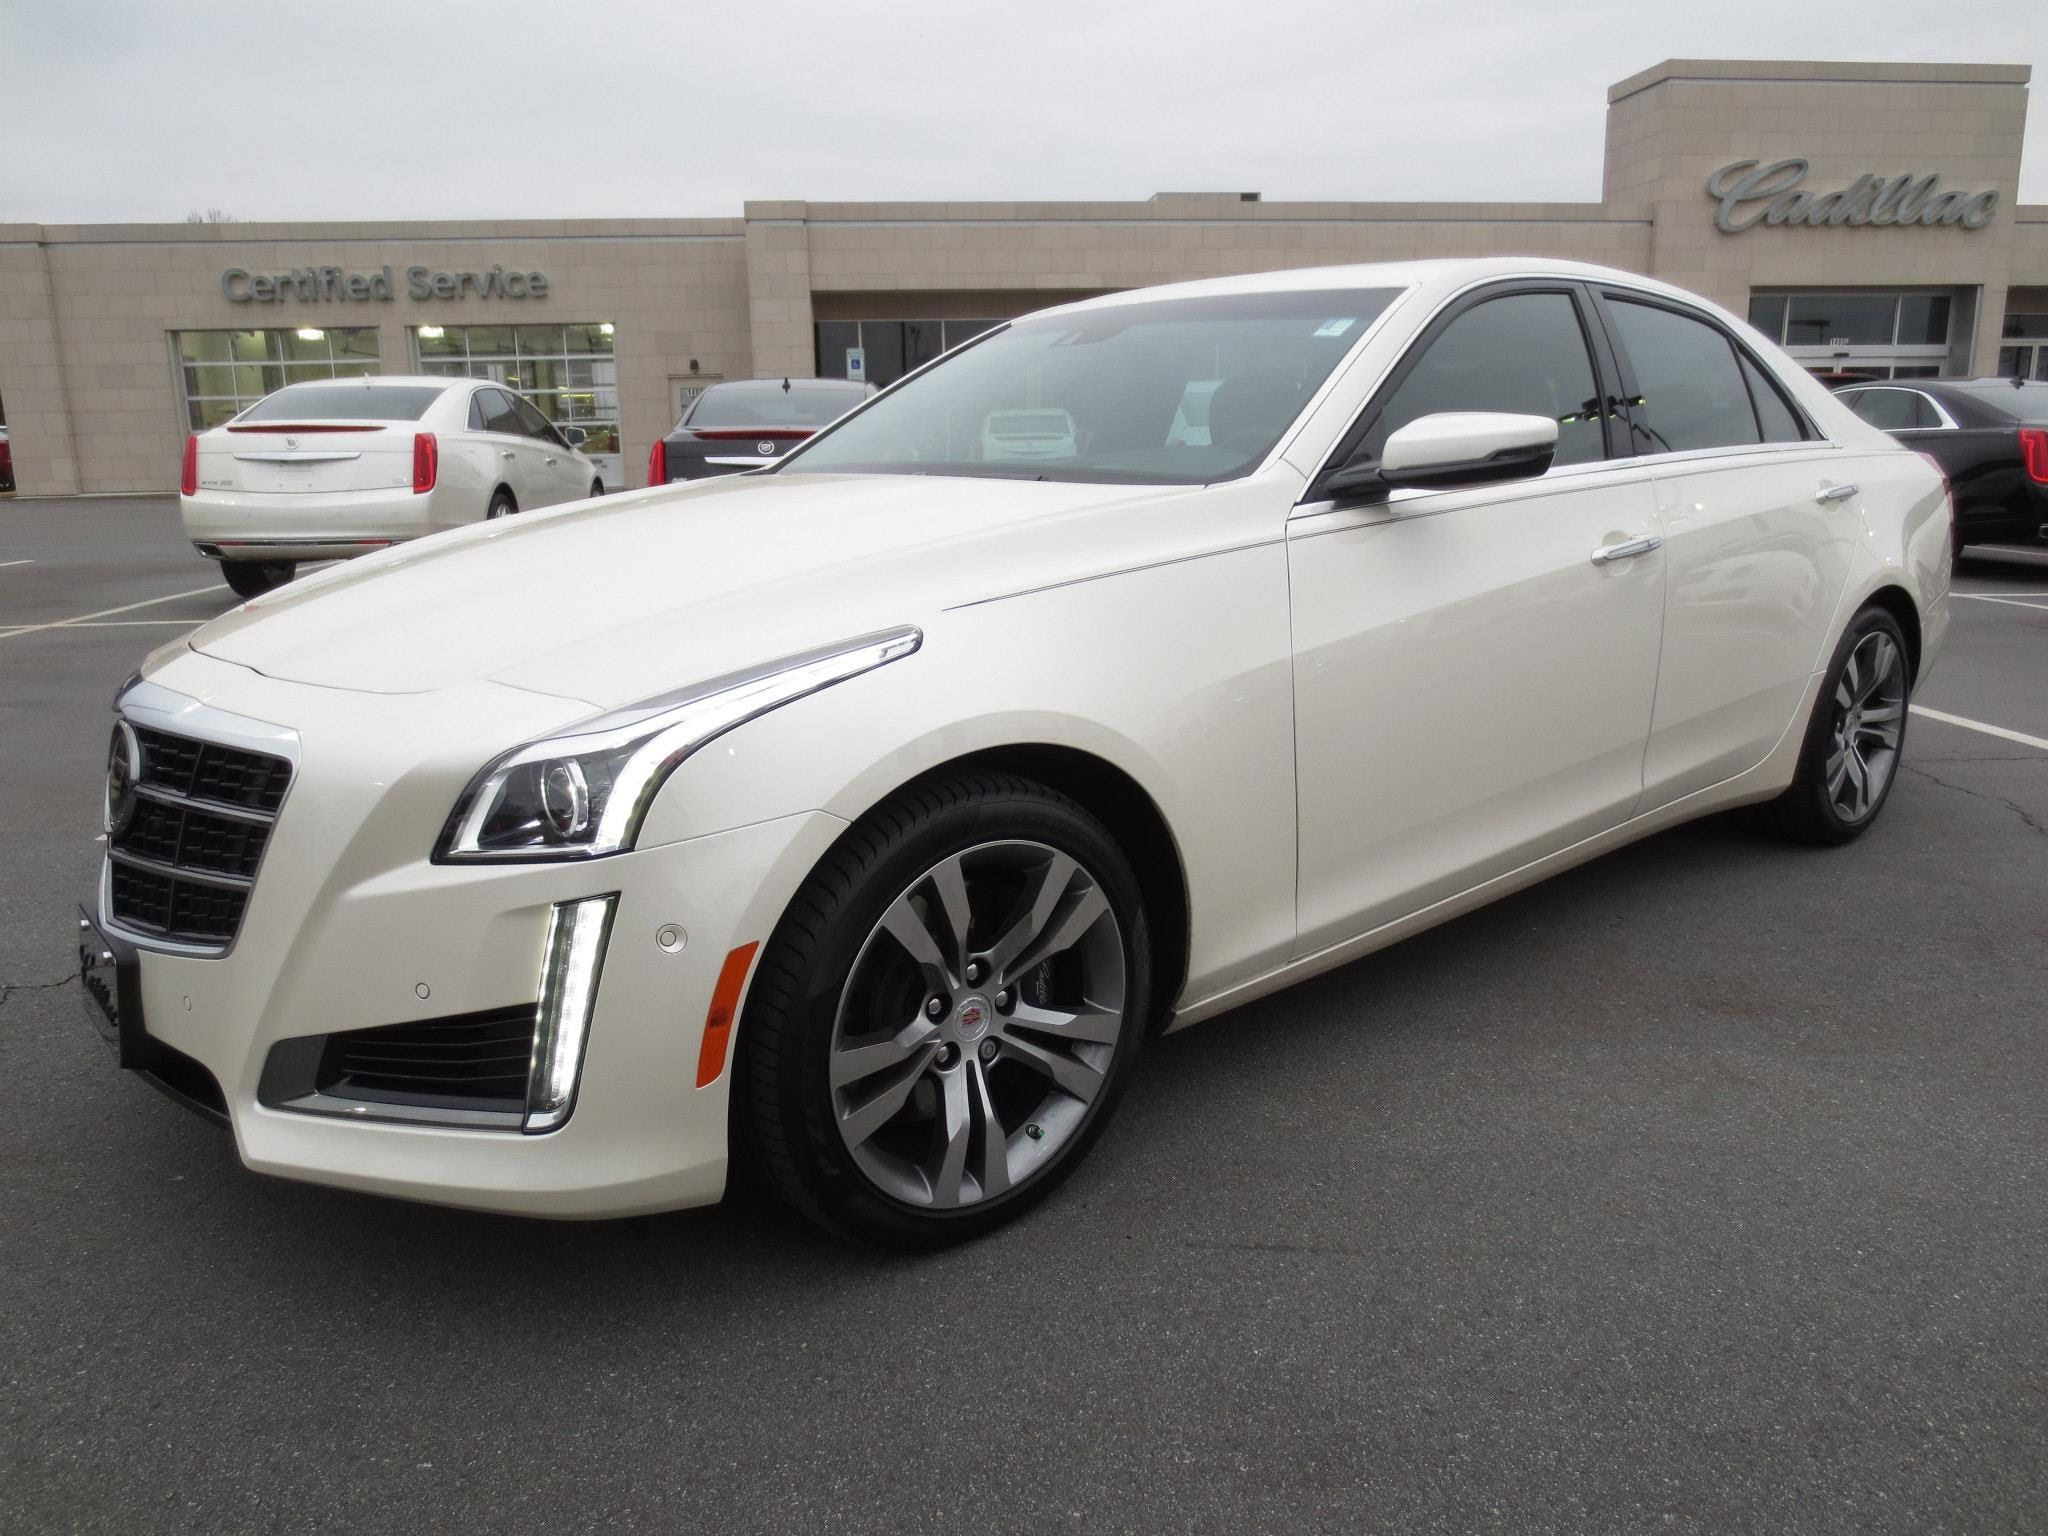 sale cadillac the group mississauga humberview stk in used cts luxury ontario image for